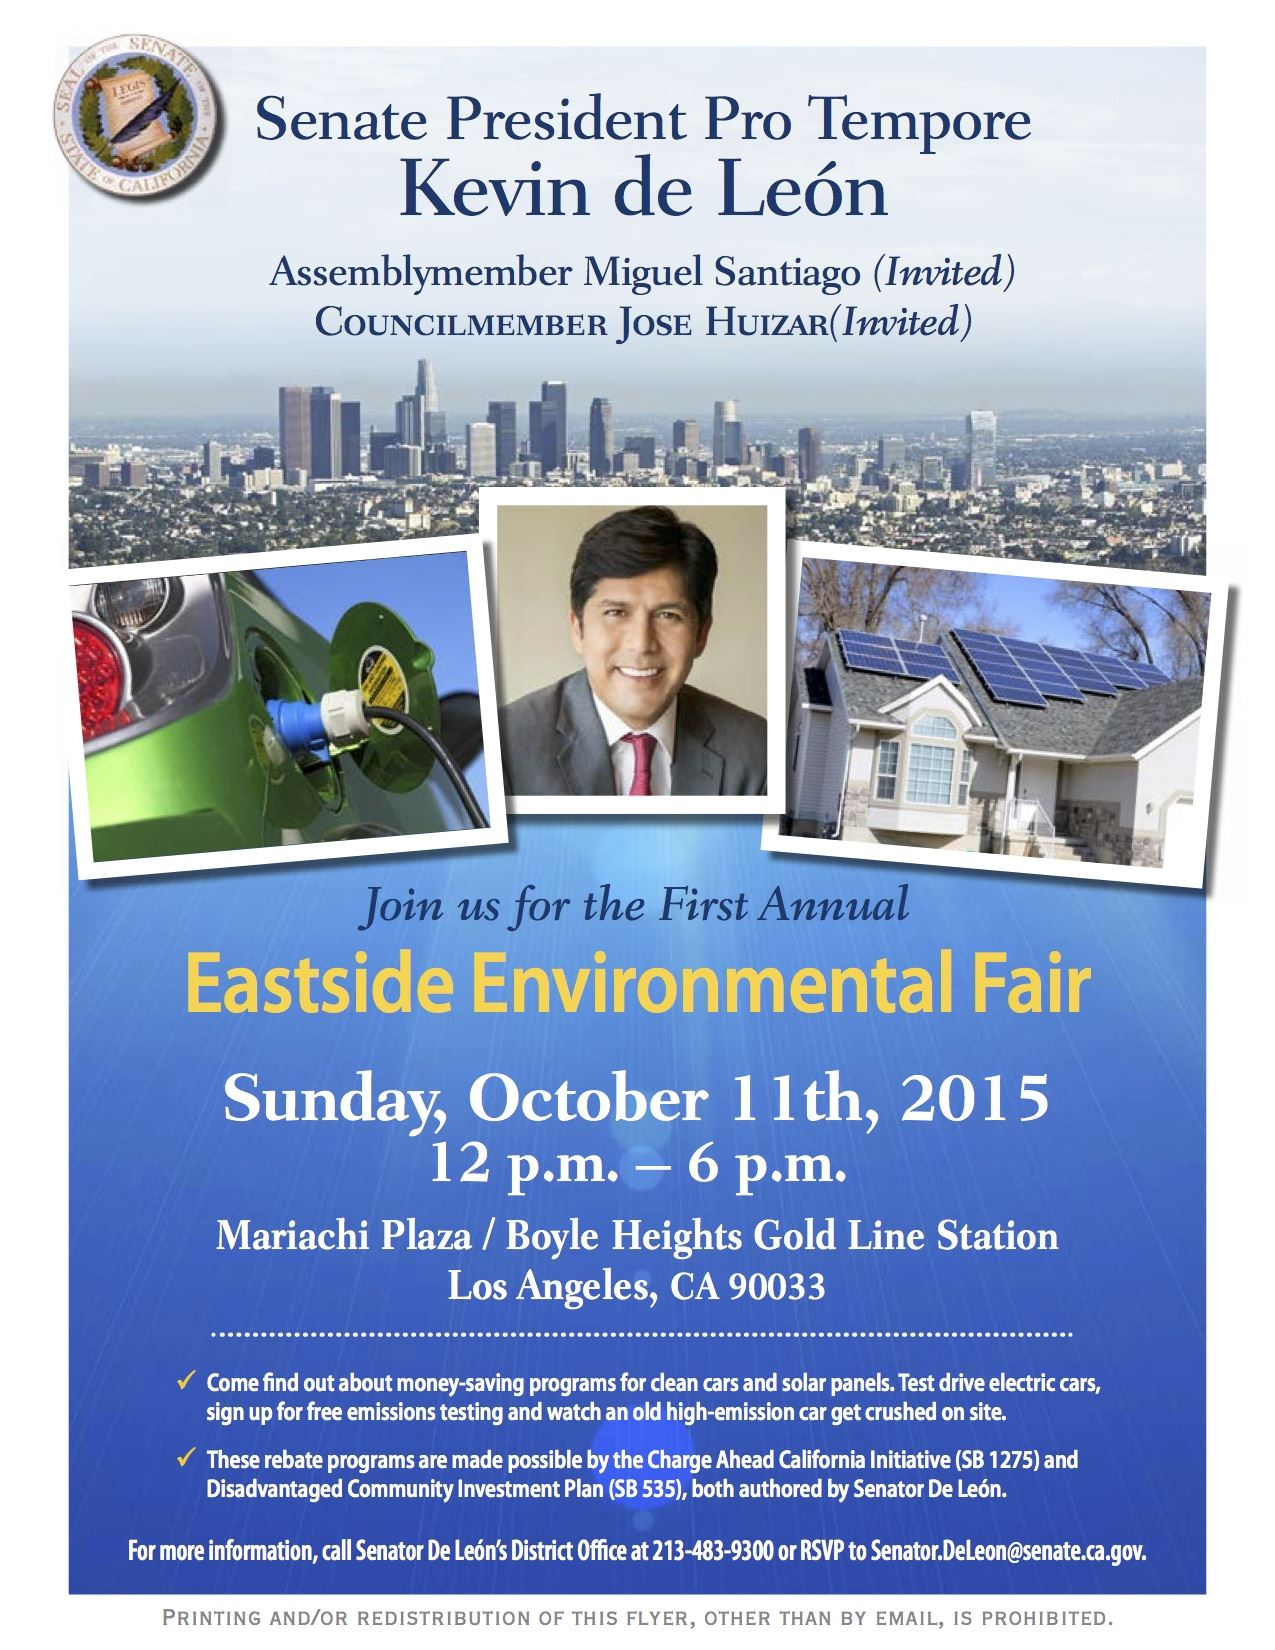 eastside environmental fair flyer